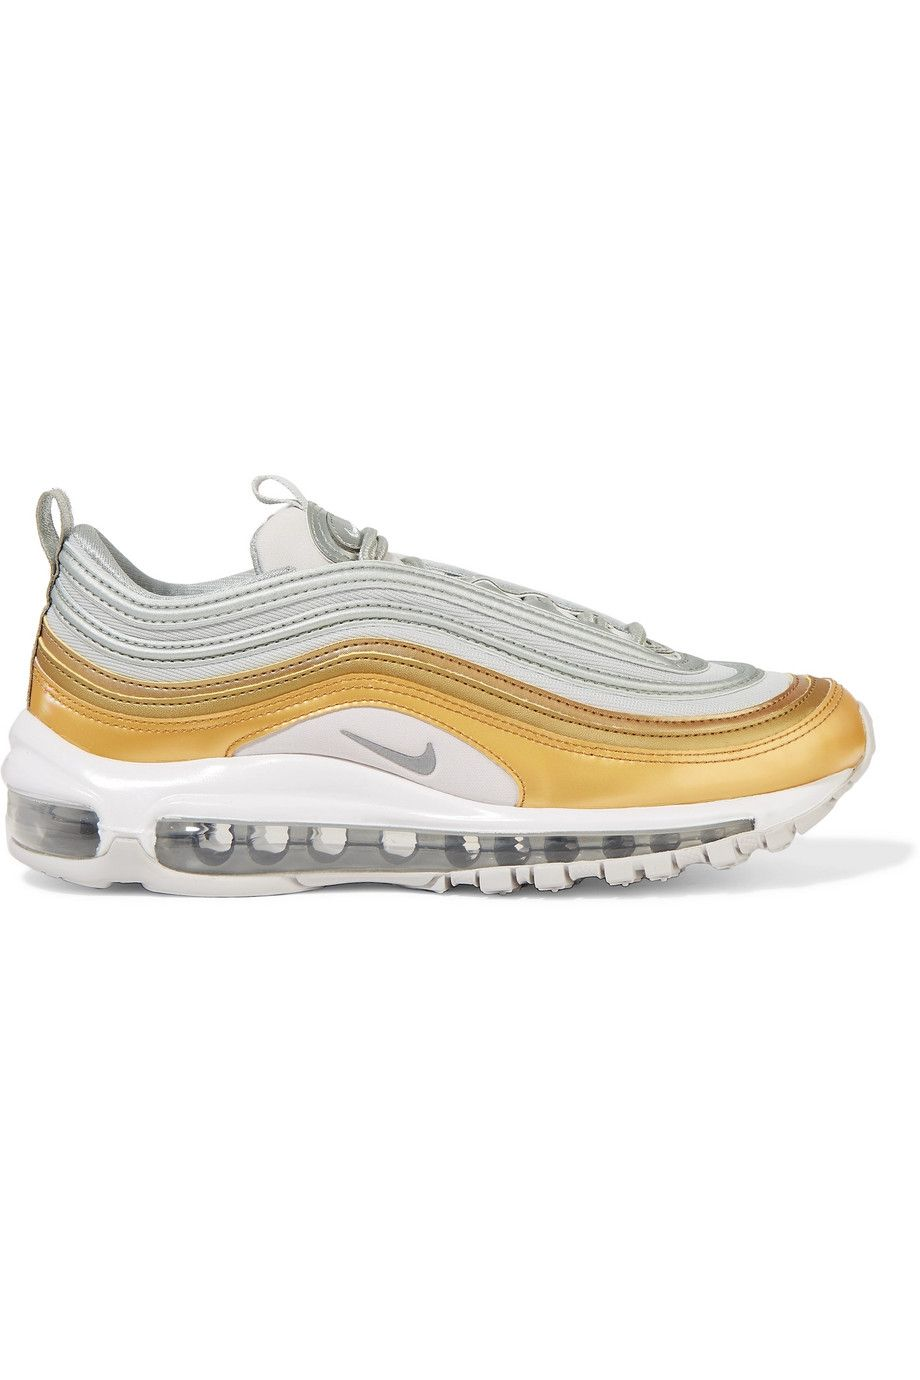 """Air Max 97 SE Sneakers Nike net-a-porter.com $85.00 SHOP NOW """"For this purchase, I consulted ELLE.com assistant editor and resident hypebeast Nerisha Penrose, who recommended the Nike Airmax 97s for its classic design and different color ways. I went with white and metallic gold (extra, why not?) which will pair nicely with summer dresses,""""— Ariana Yaptangco, Social Media Editor"""